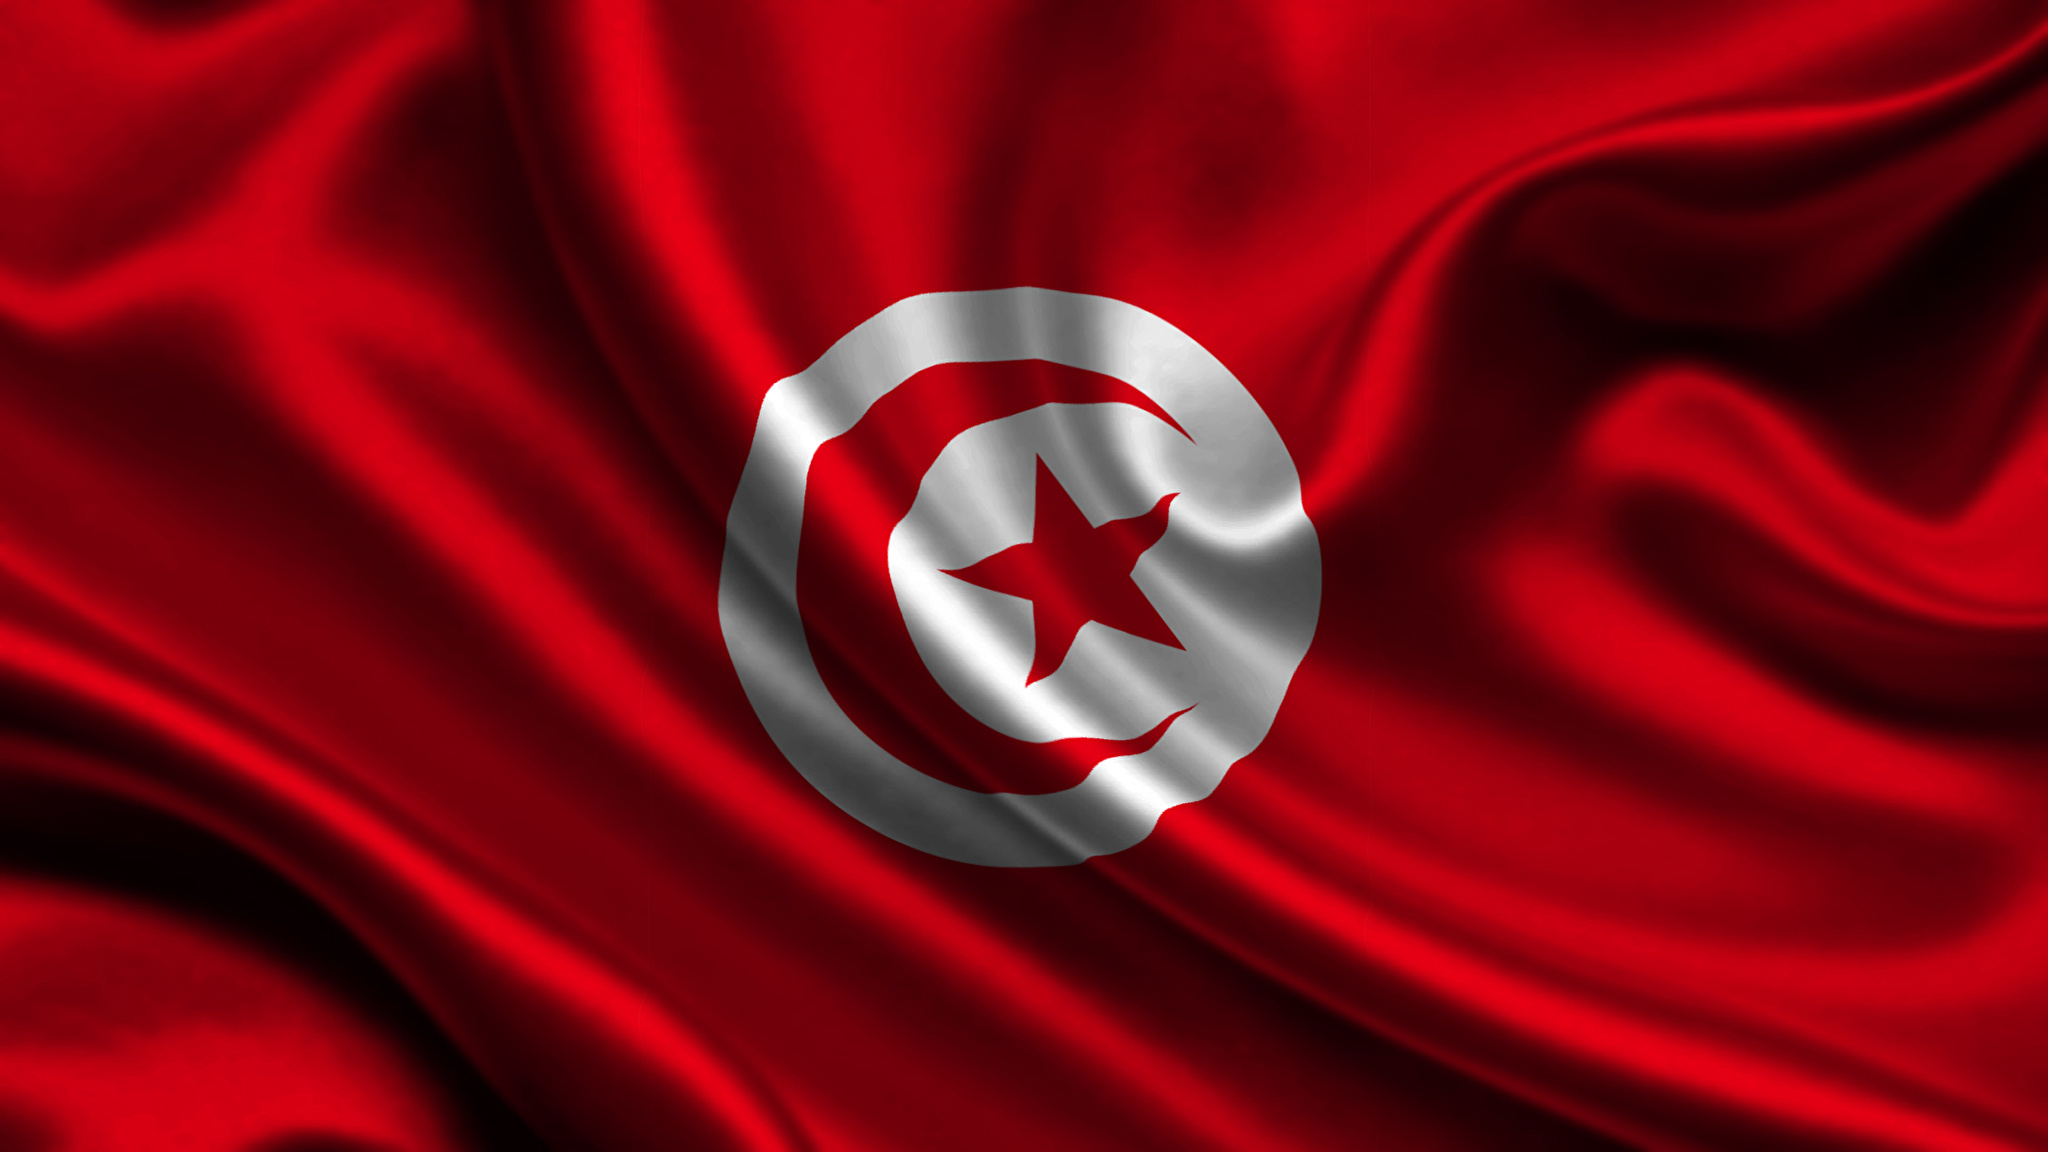 Free Download Photo Tunisia Flag 2048x1152 2048x1152 For